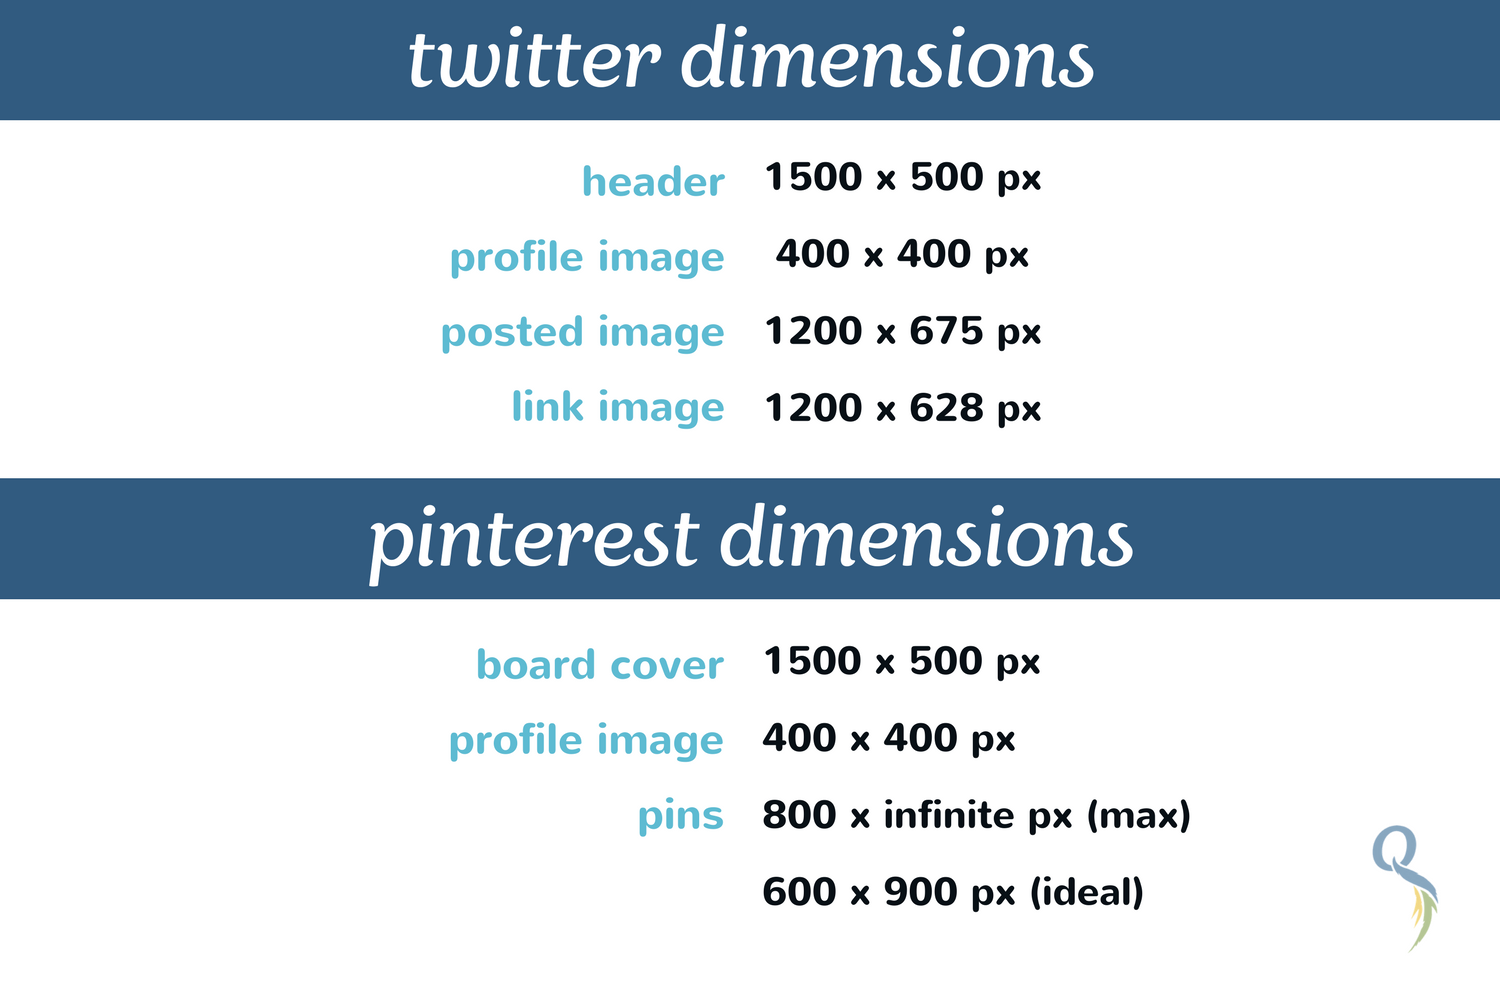 twitter and pinterest dimensions.png